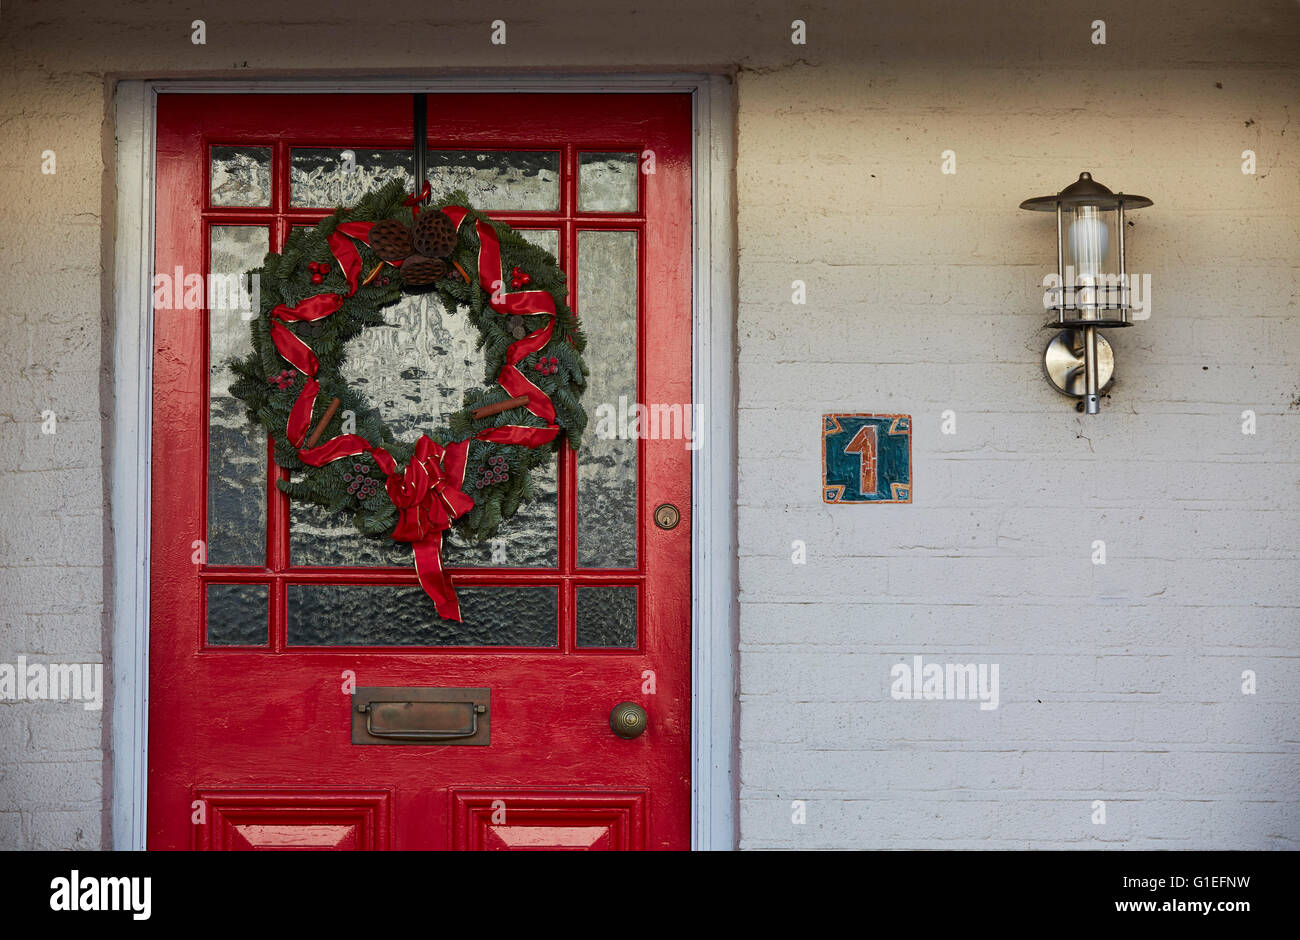 Christmas Garland On Door. Green Wreath With Red Ribbon Hanging On Red And Glass  Door